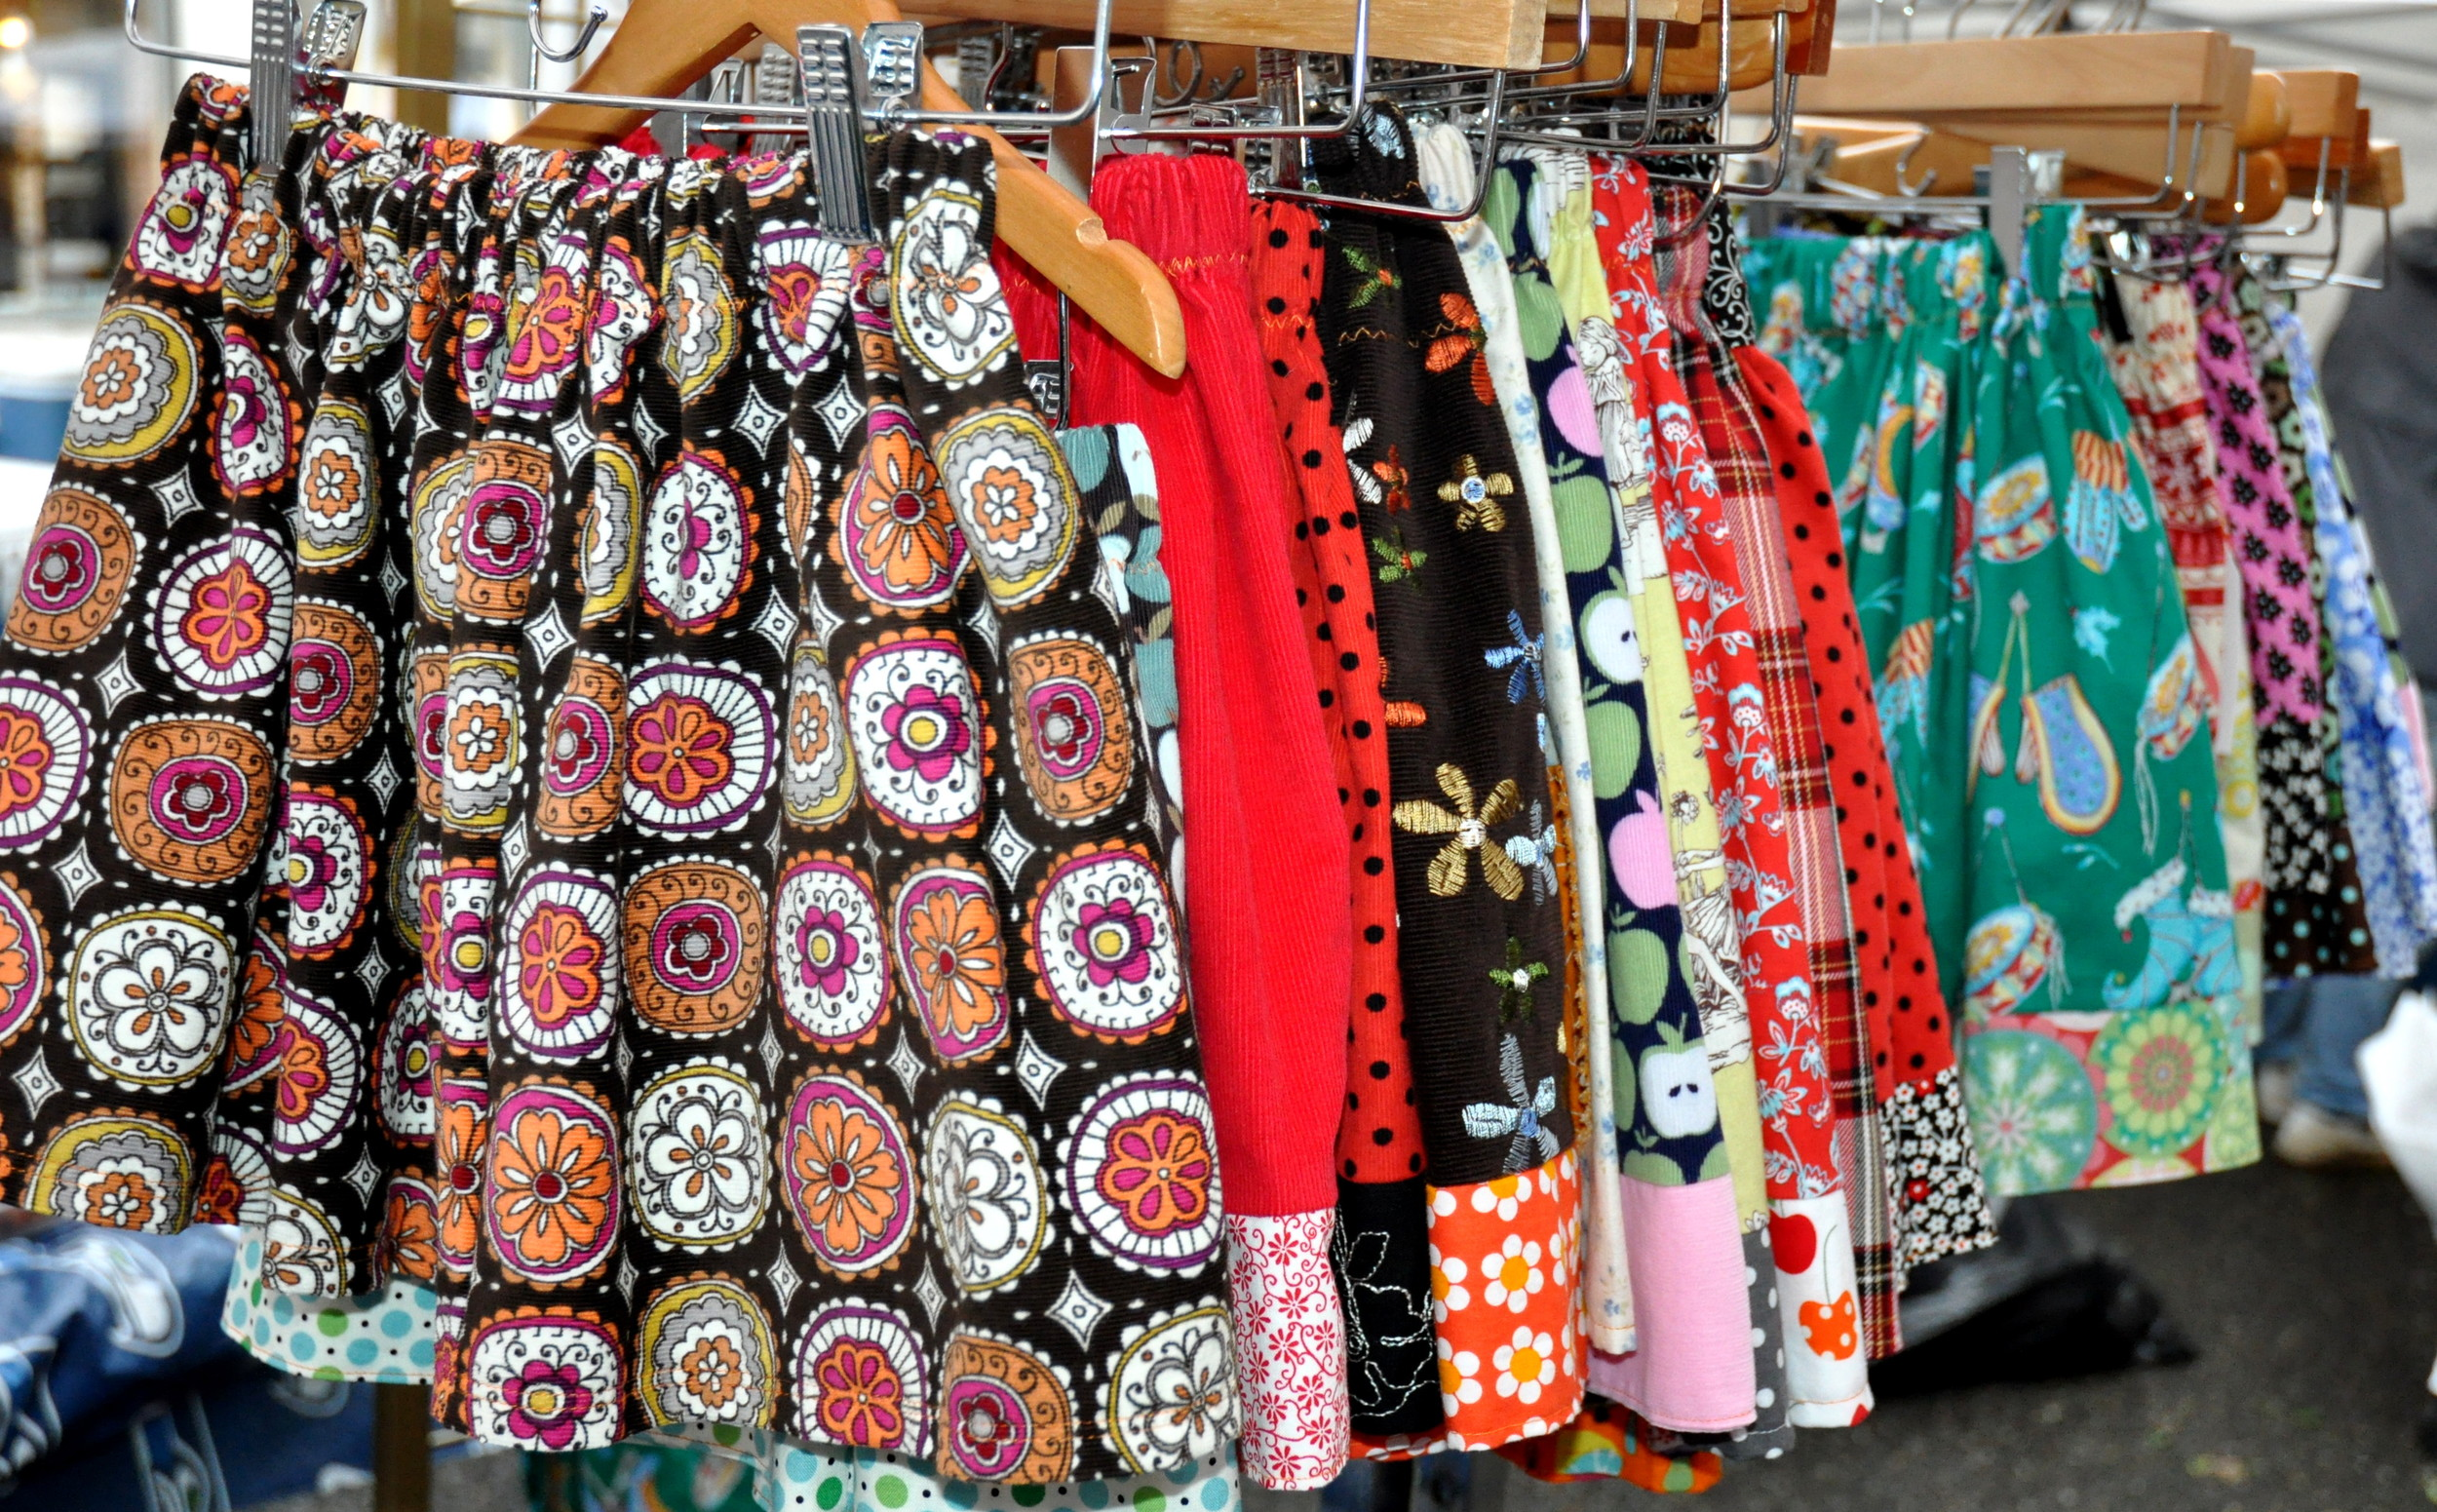 Colorful skirts from Marmalade Originals at Ballard Farmers Market. Copyright Zachary D. Lyons.